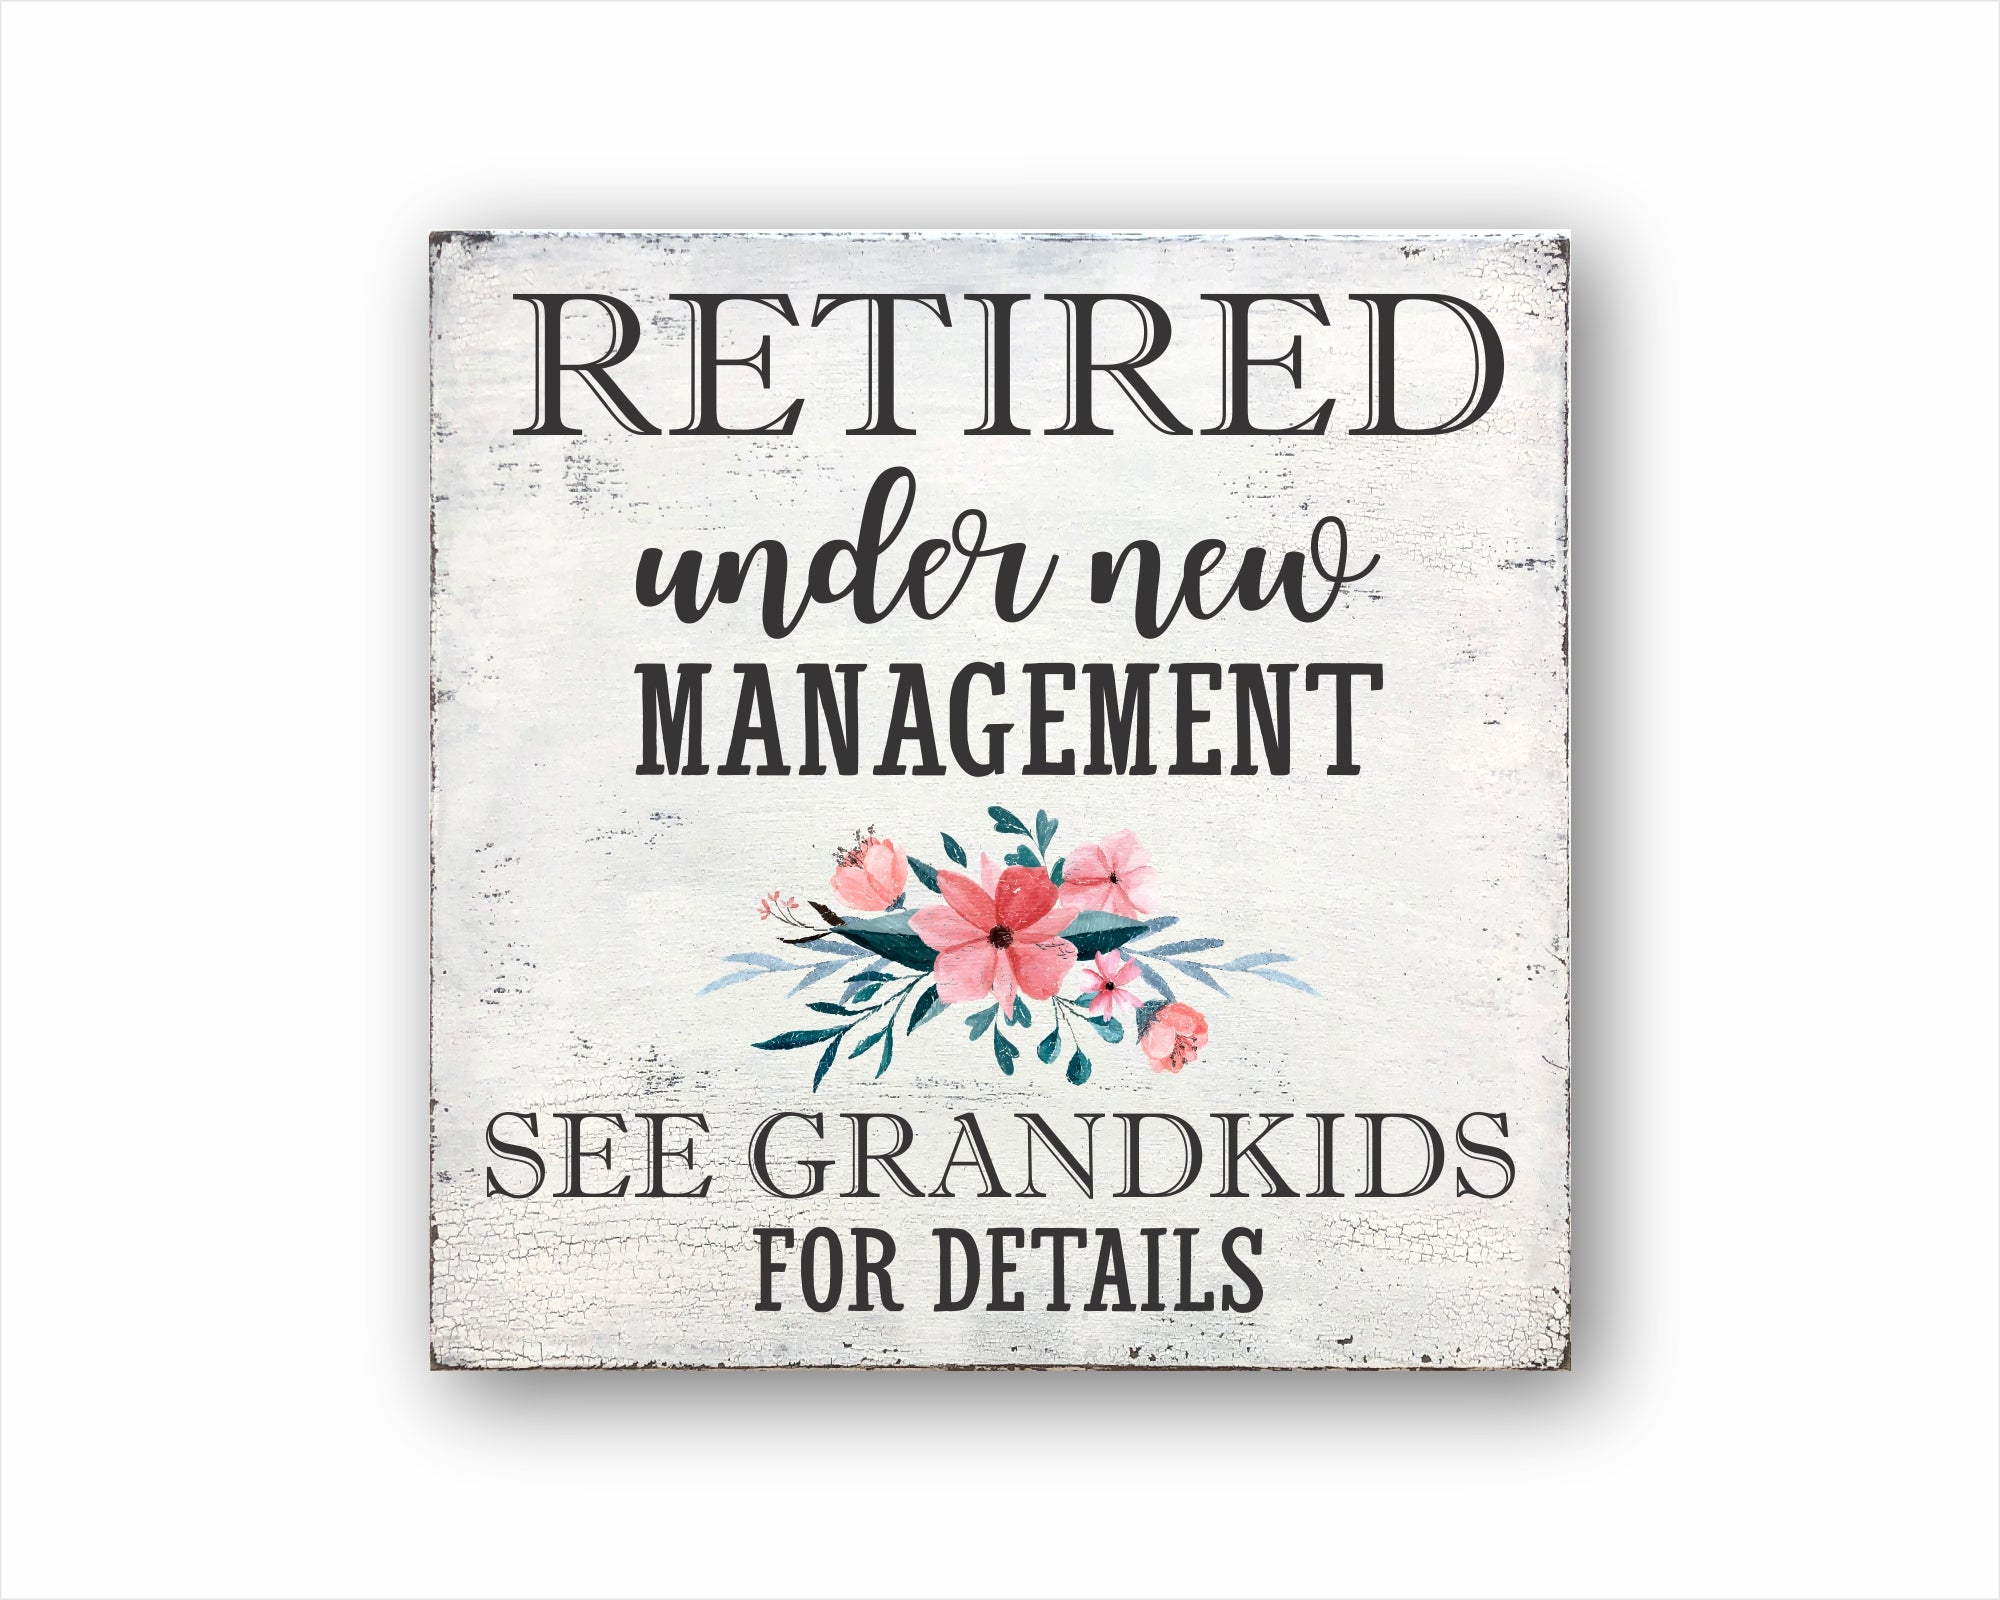 Retired Under New Management See Grandkids For Details: Rustic Square Wood Sign